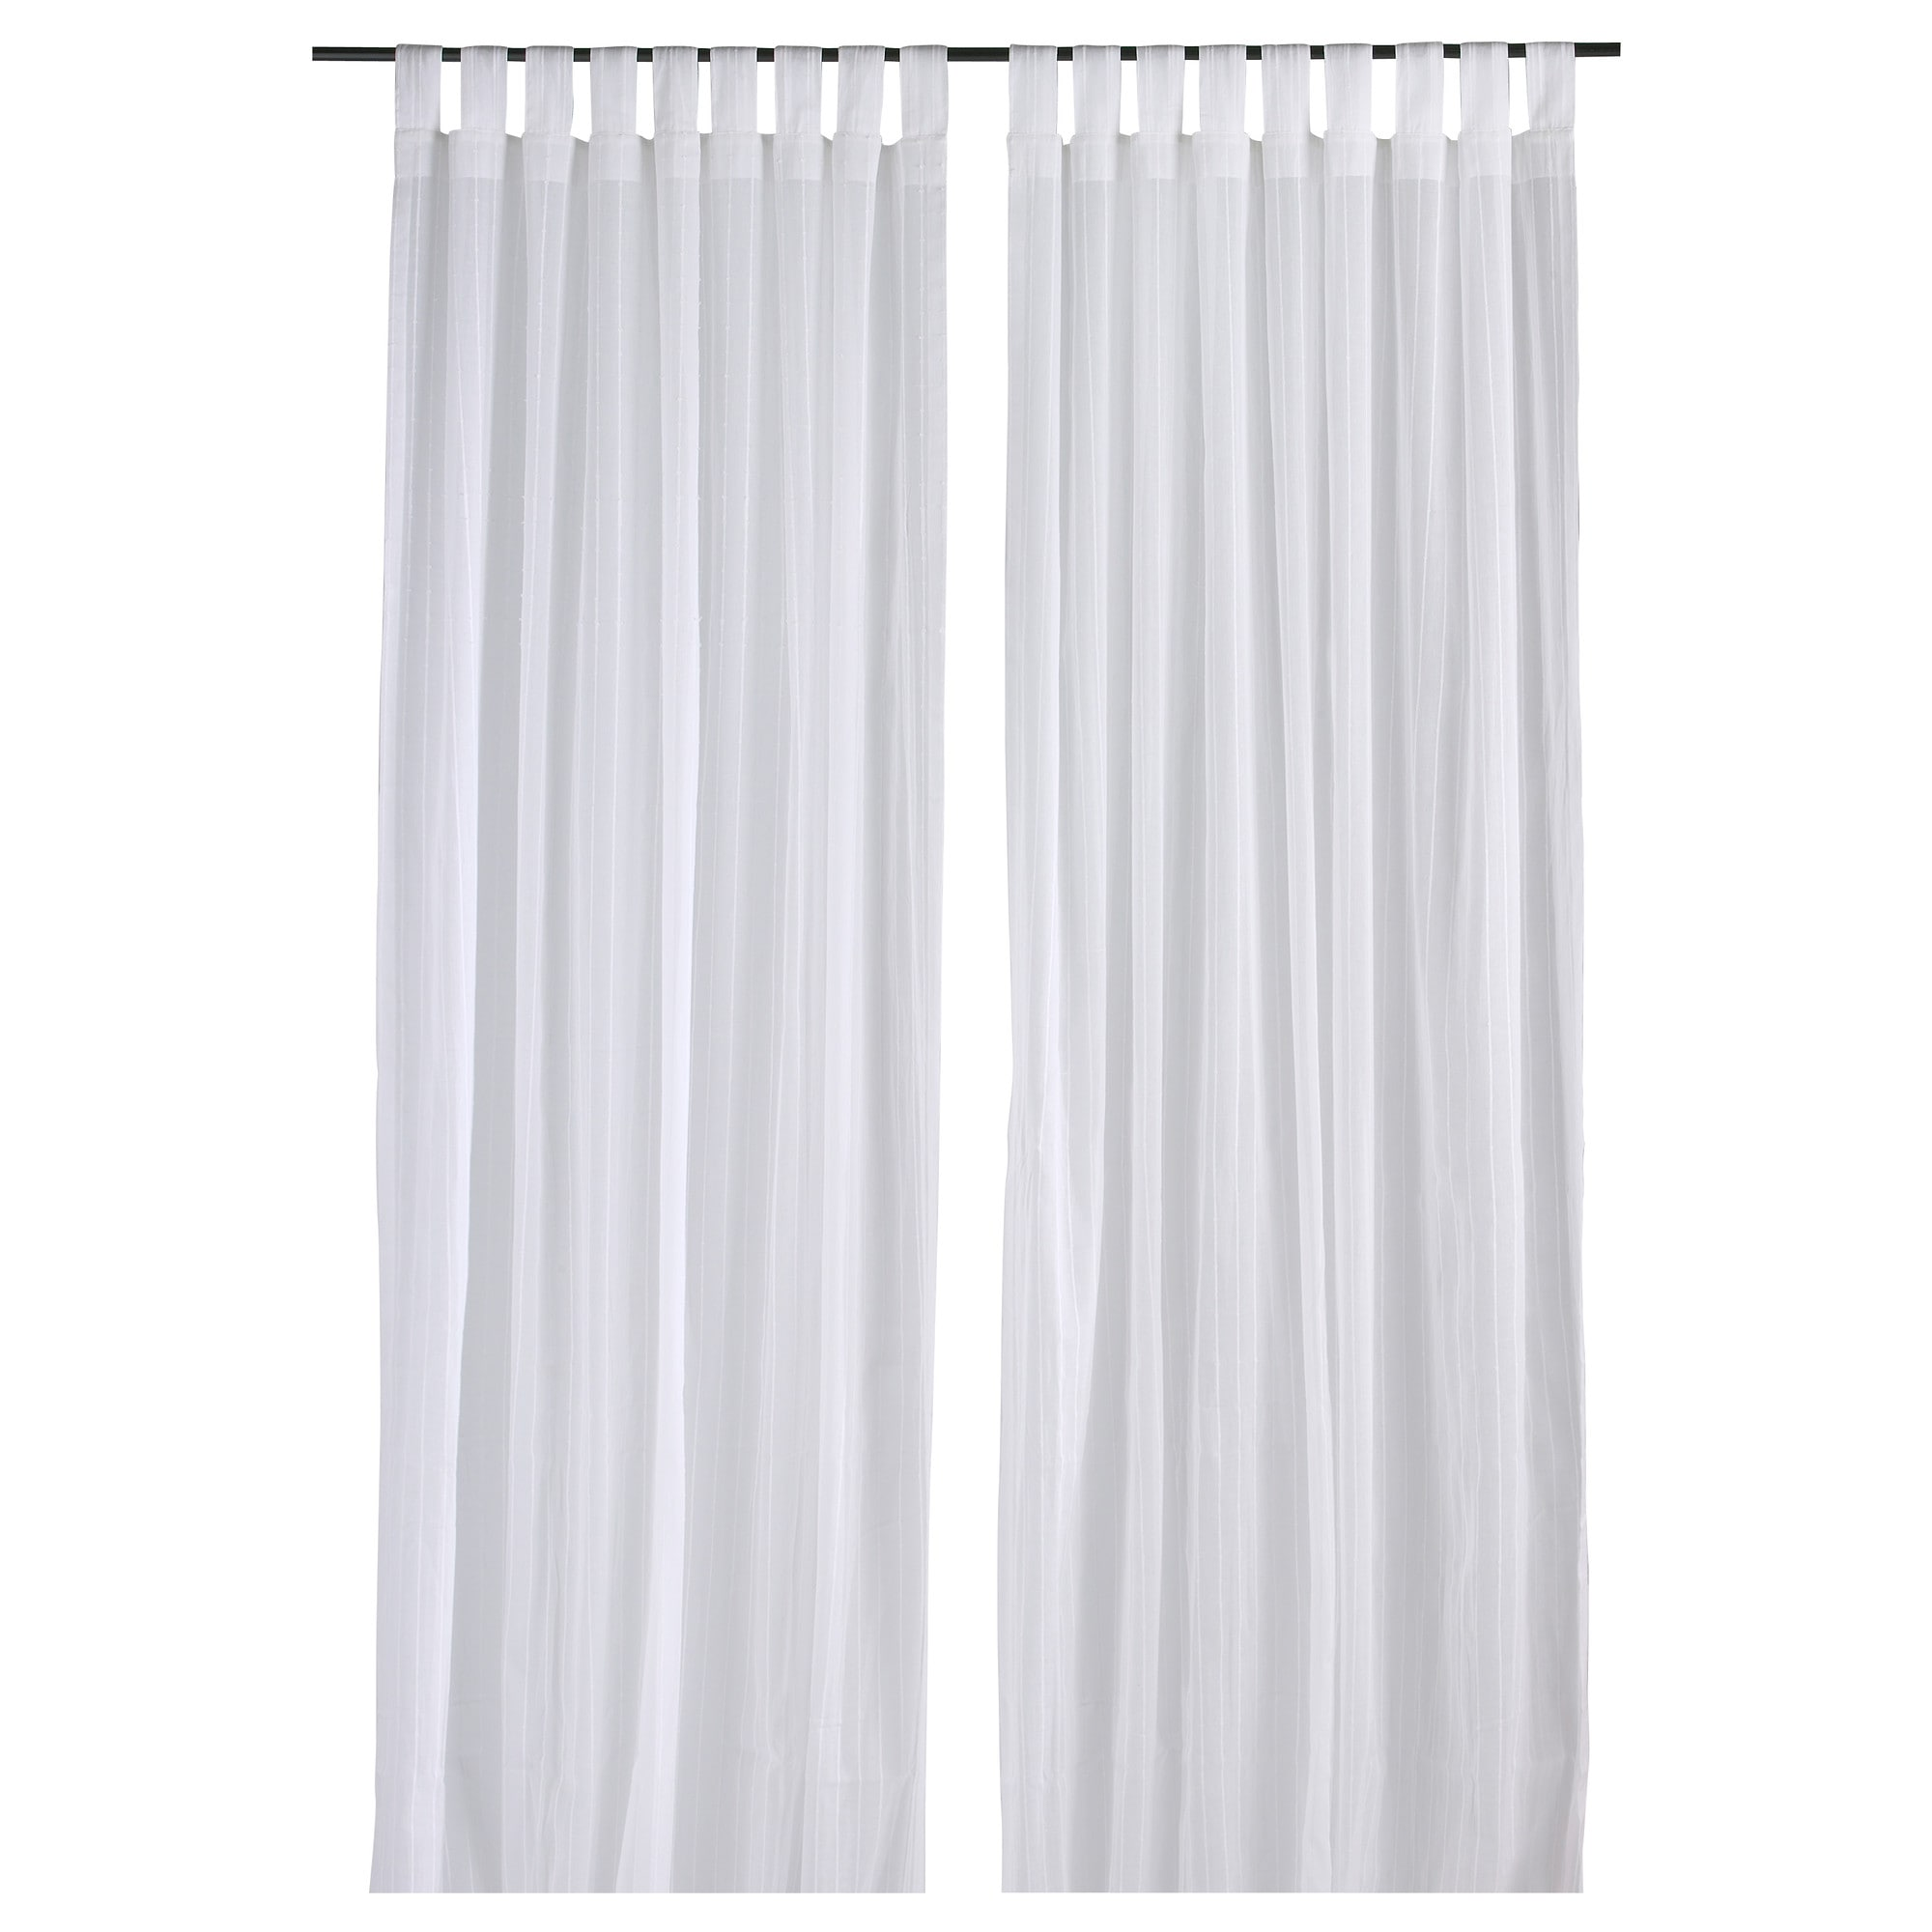 Curtains ideas curtains ikea inspiring pictures of for White curtains ikea